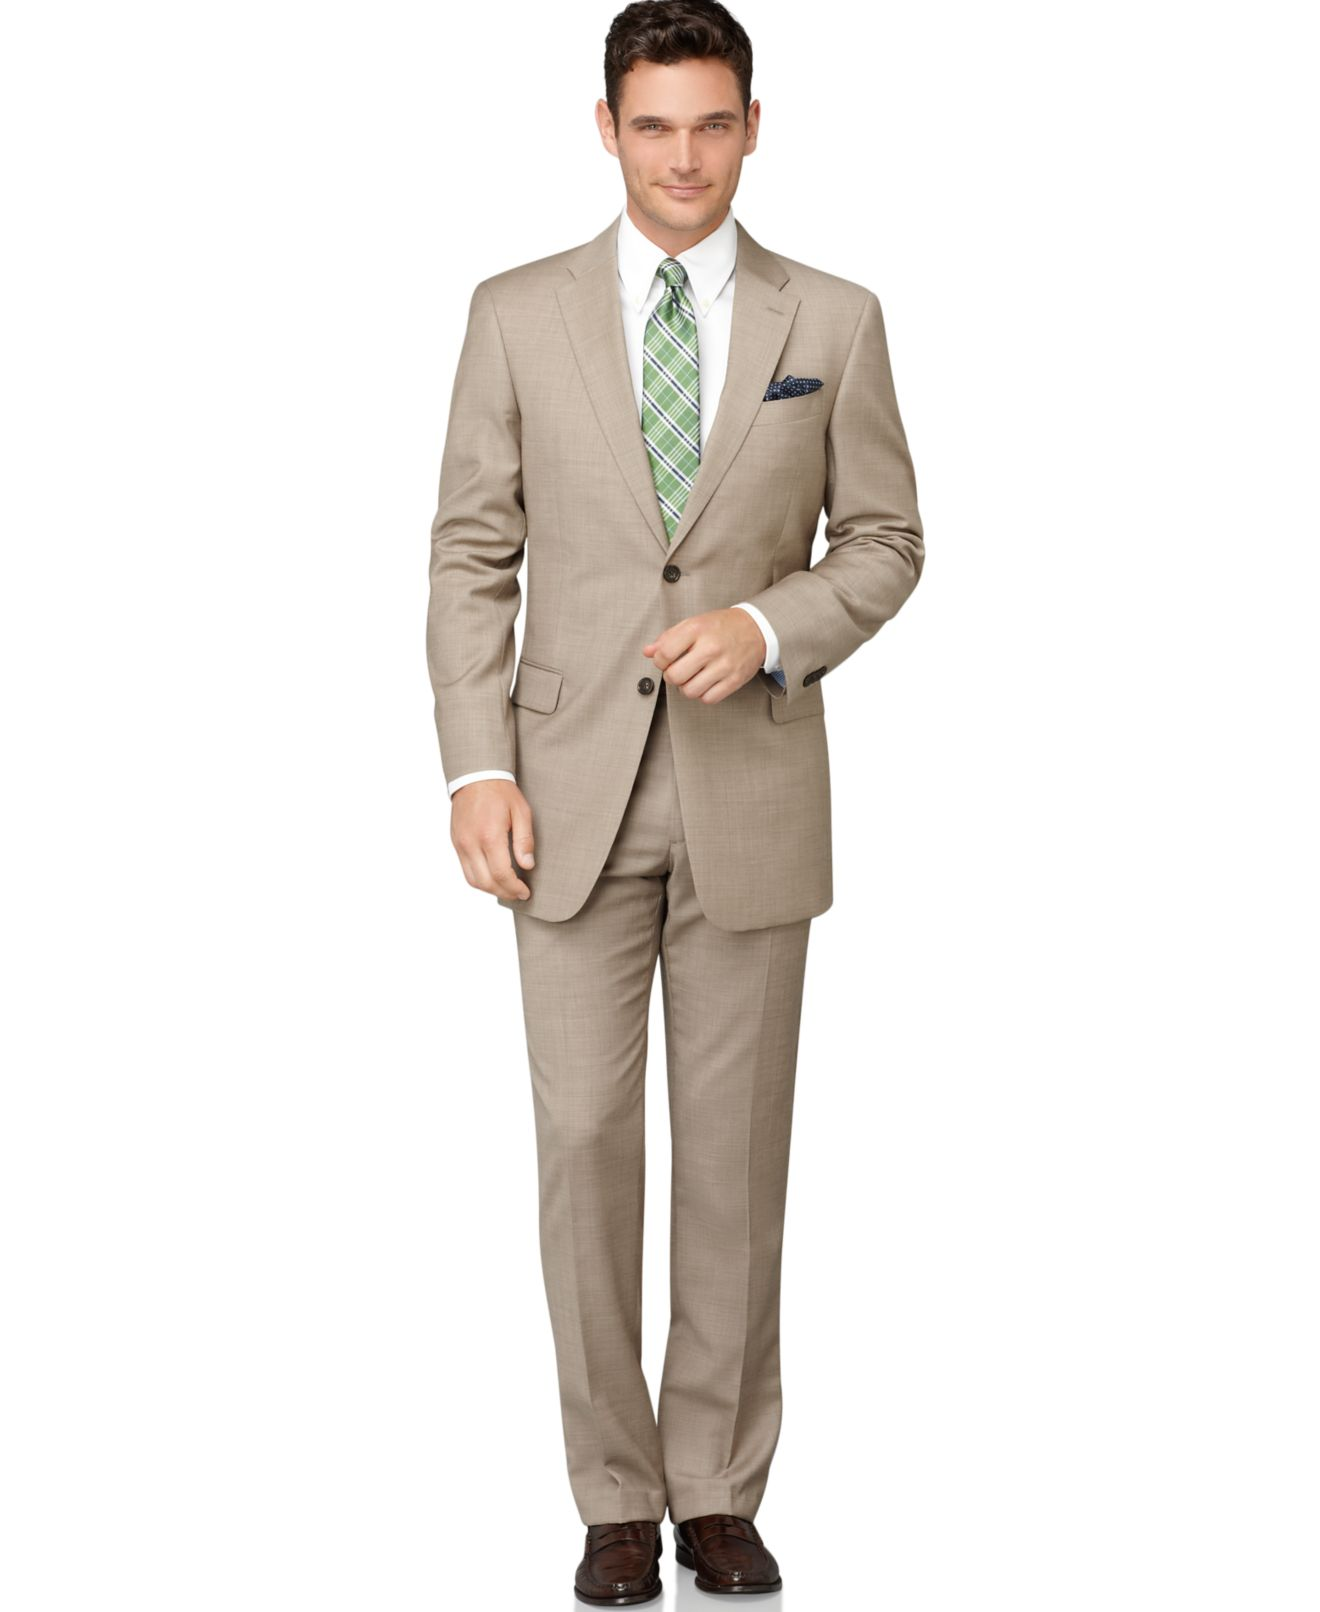 Tommy Hilfiger Tan Sharkskin Classic-Fit Suit Separates - Suits